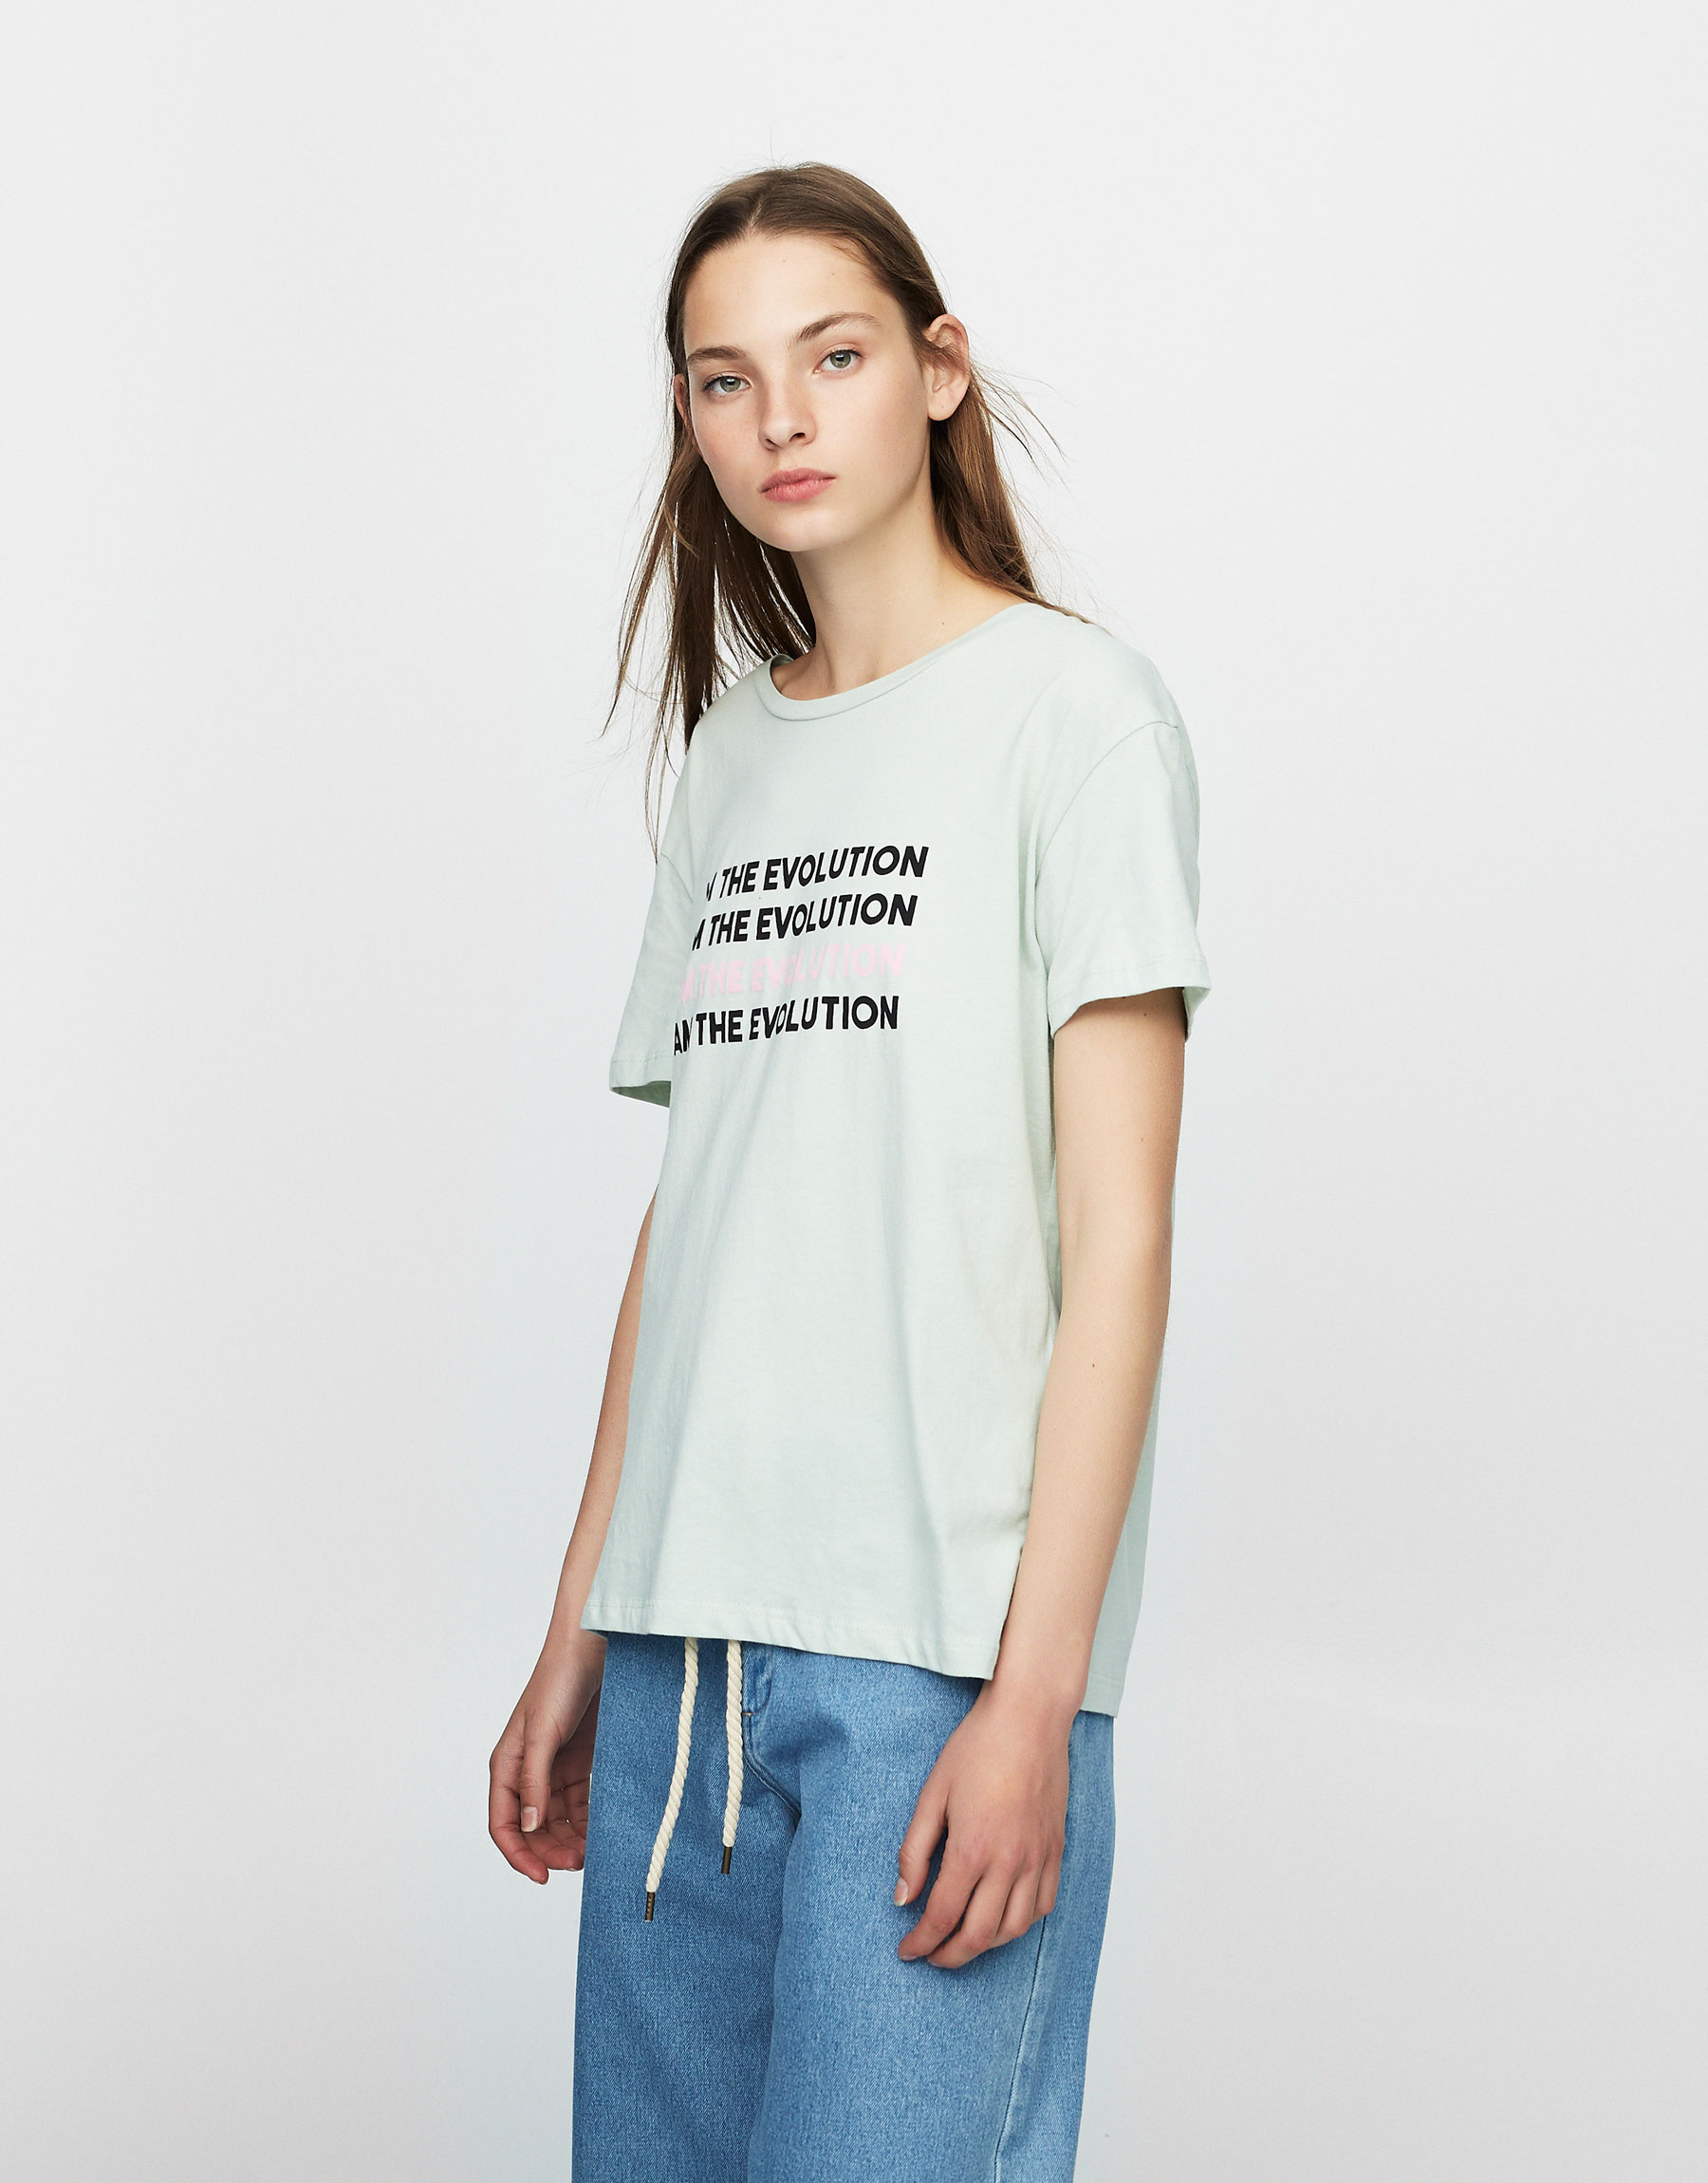 T-shirt with printed slogan